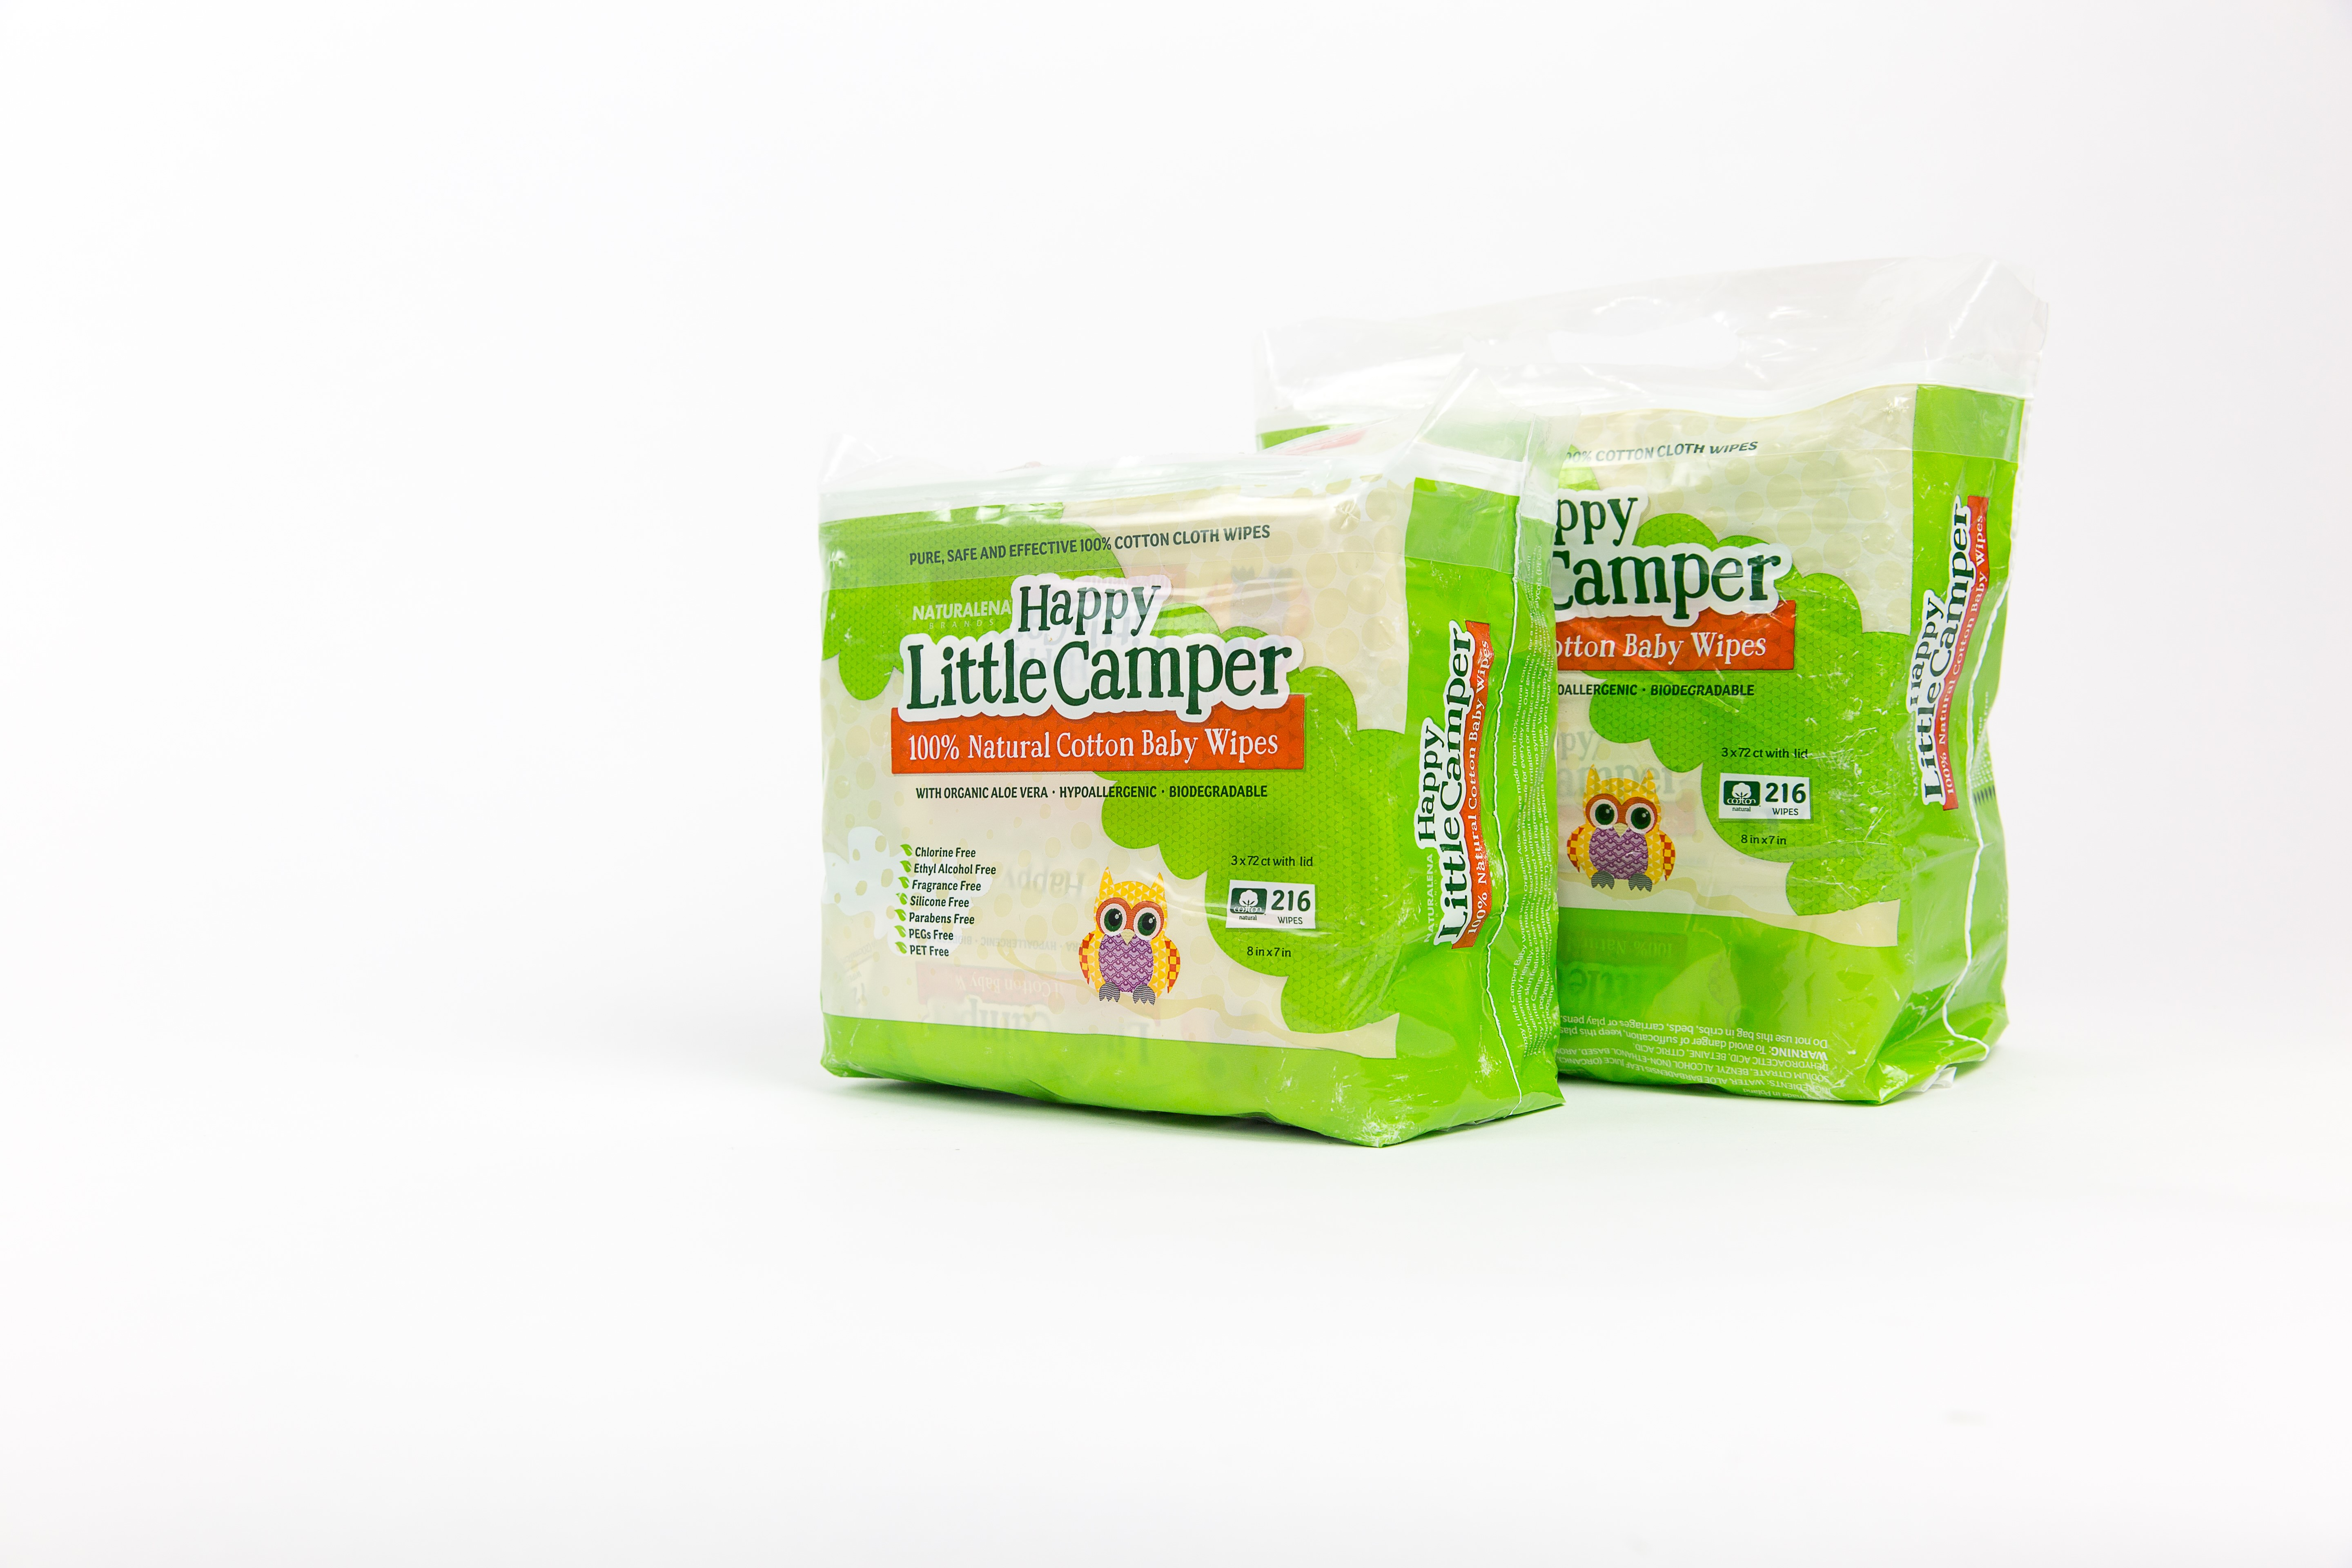 216 Ct Happy Little Camper Baby Wipes Natural All-Cotton with Organic Aloe